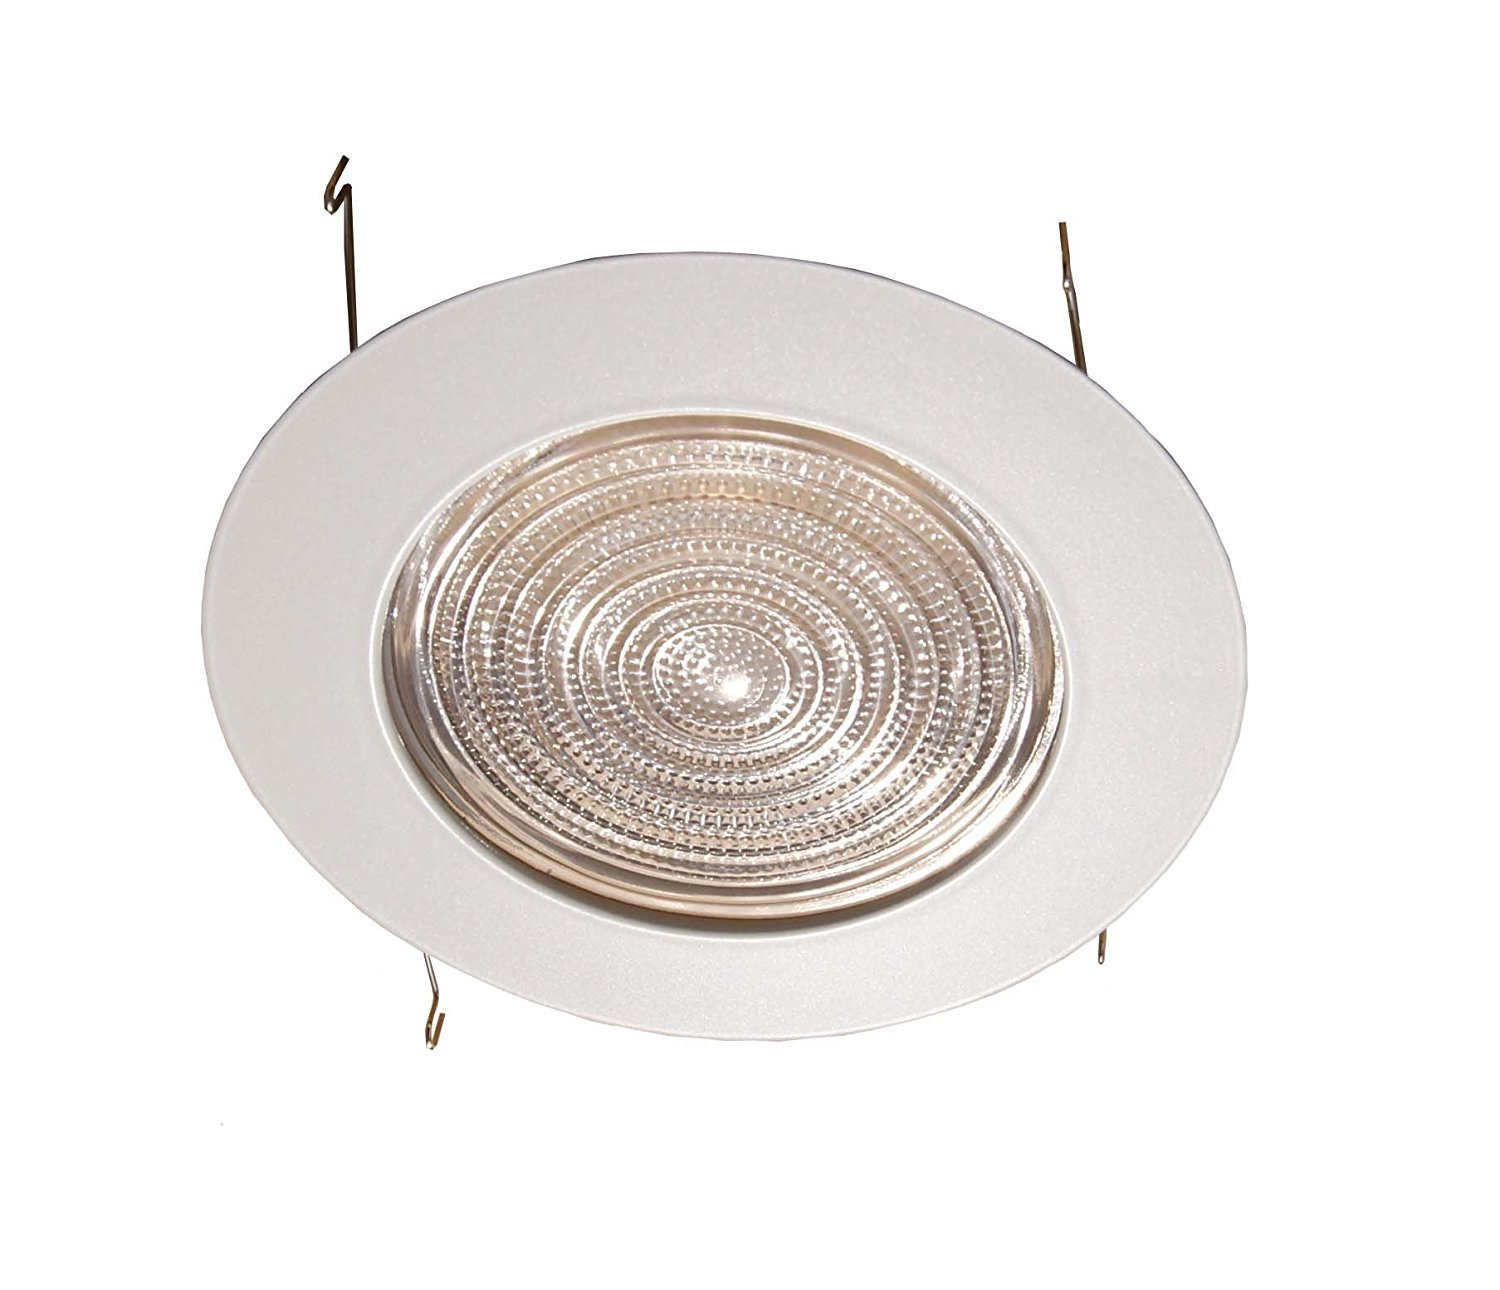 Wac lighting hr hl 4 low voltage new construction housing recessed can light - 6 Inches Fresnel Lens Shower Trim For Recessed Light Lighting Fits Halo Juno Recessed Light Fixture Trims Amazon Com